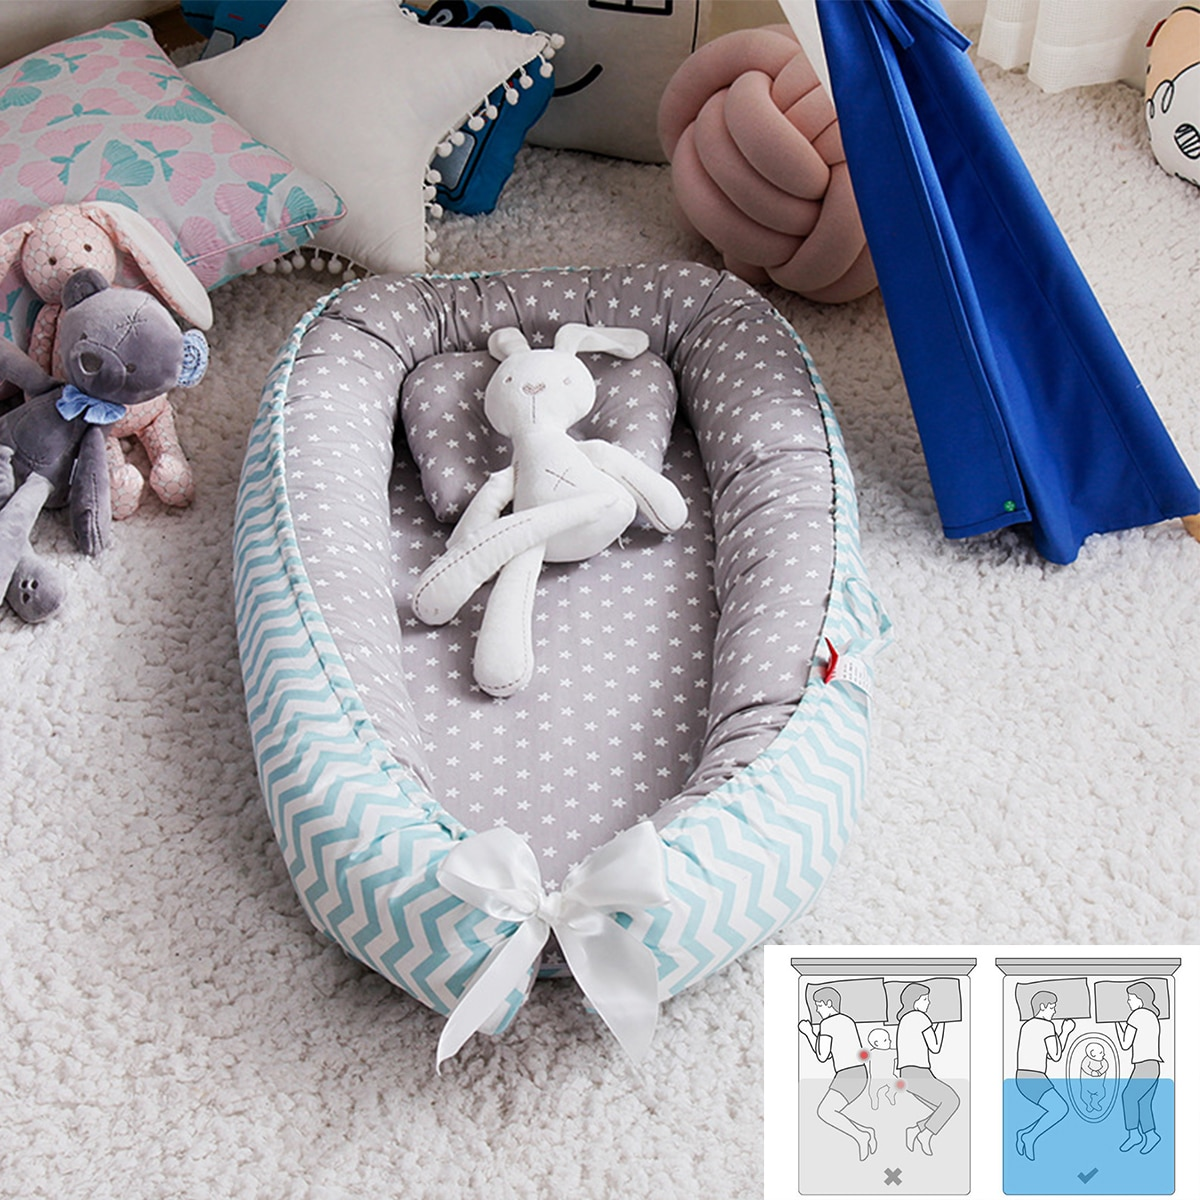 88*53cm Baby Nest Bed Portable Crib Travel Bed Infant Toddler Cotton Cradle For Newborn Baby Bassinet Bumper Free shipping